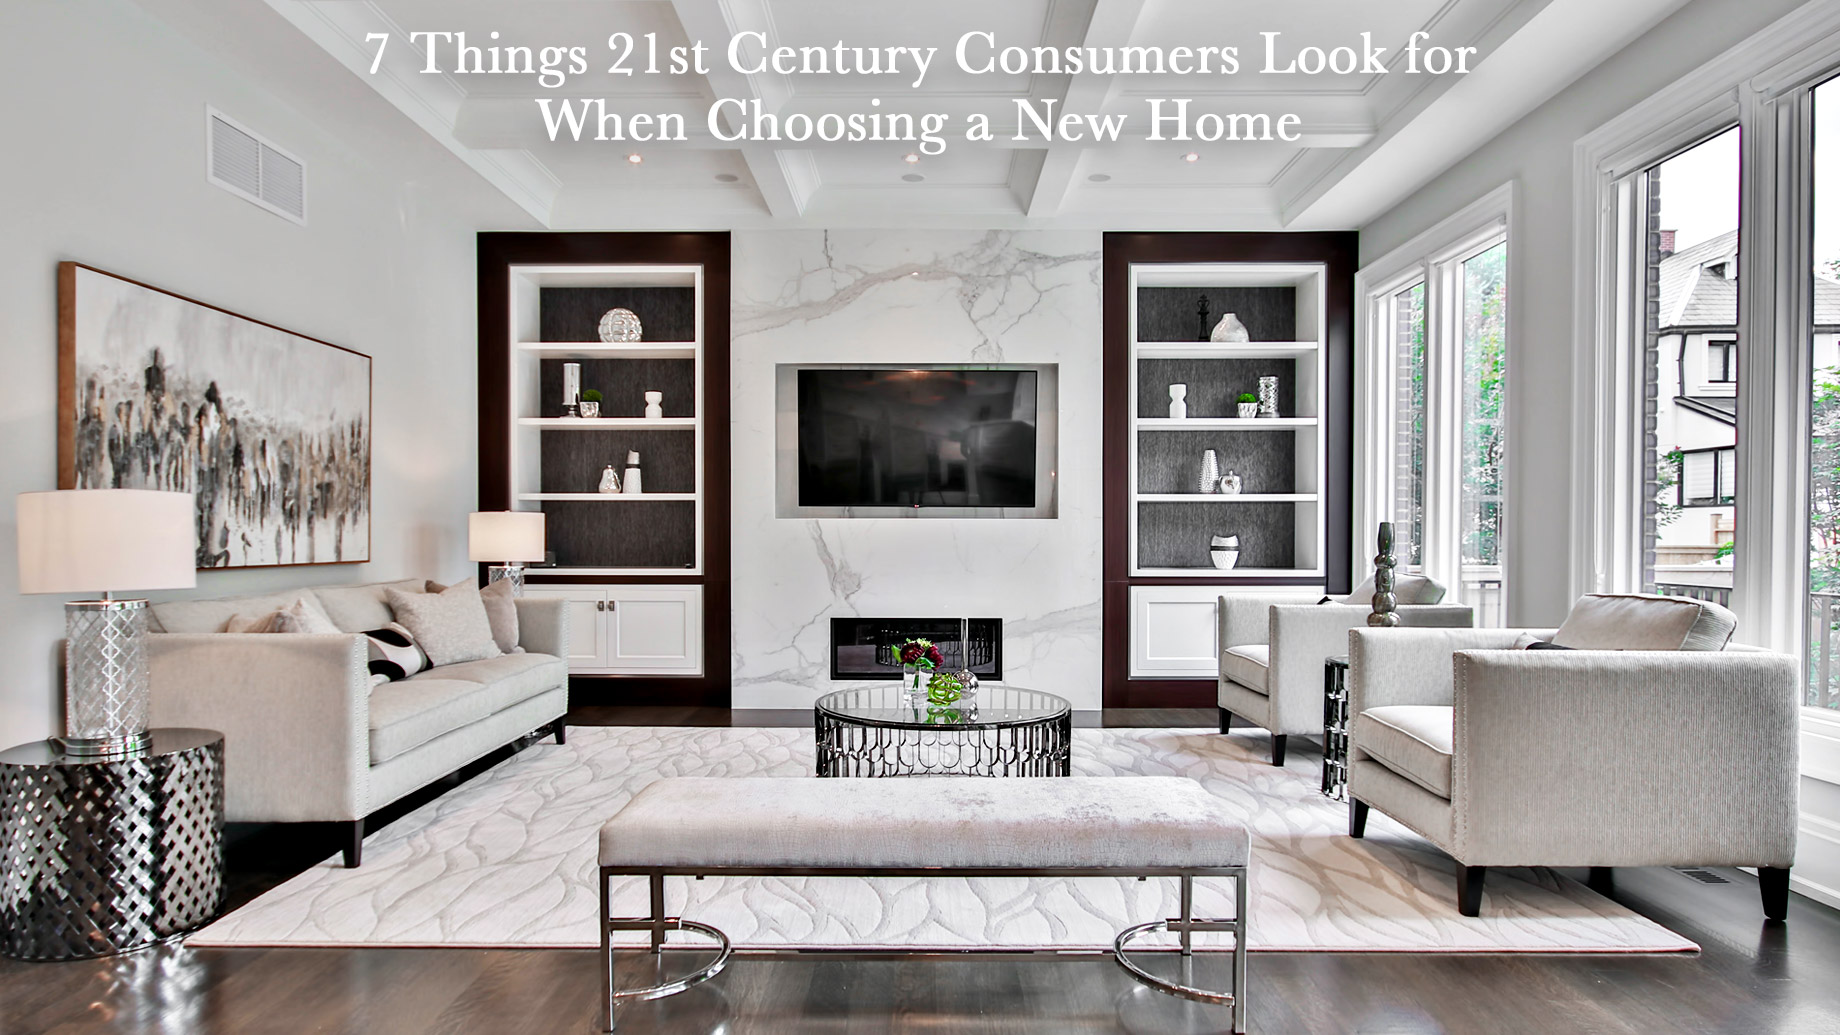 7 Things 21st Century Consumers Look for When Choosing a New Home